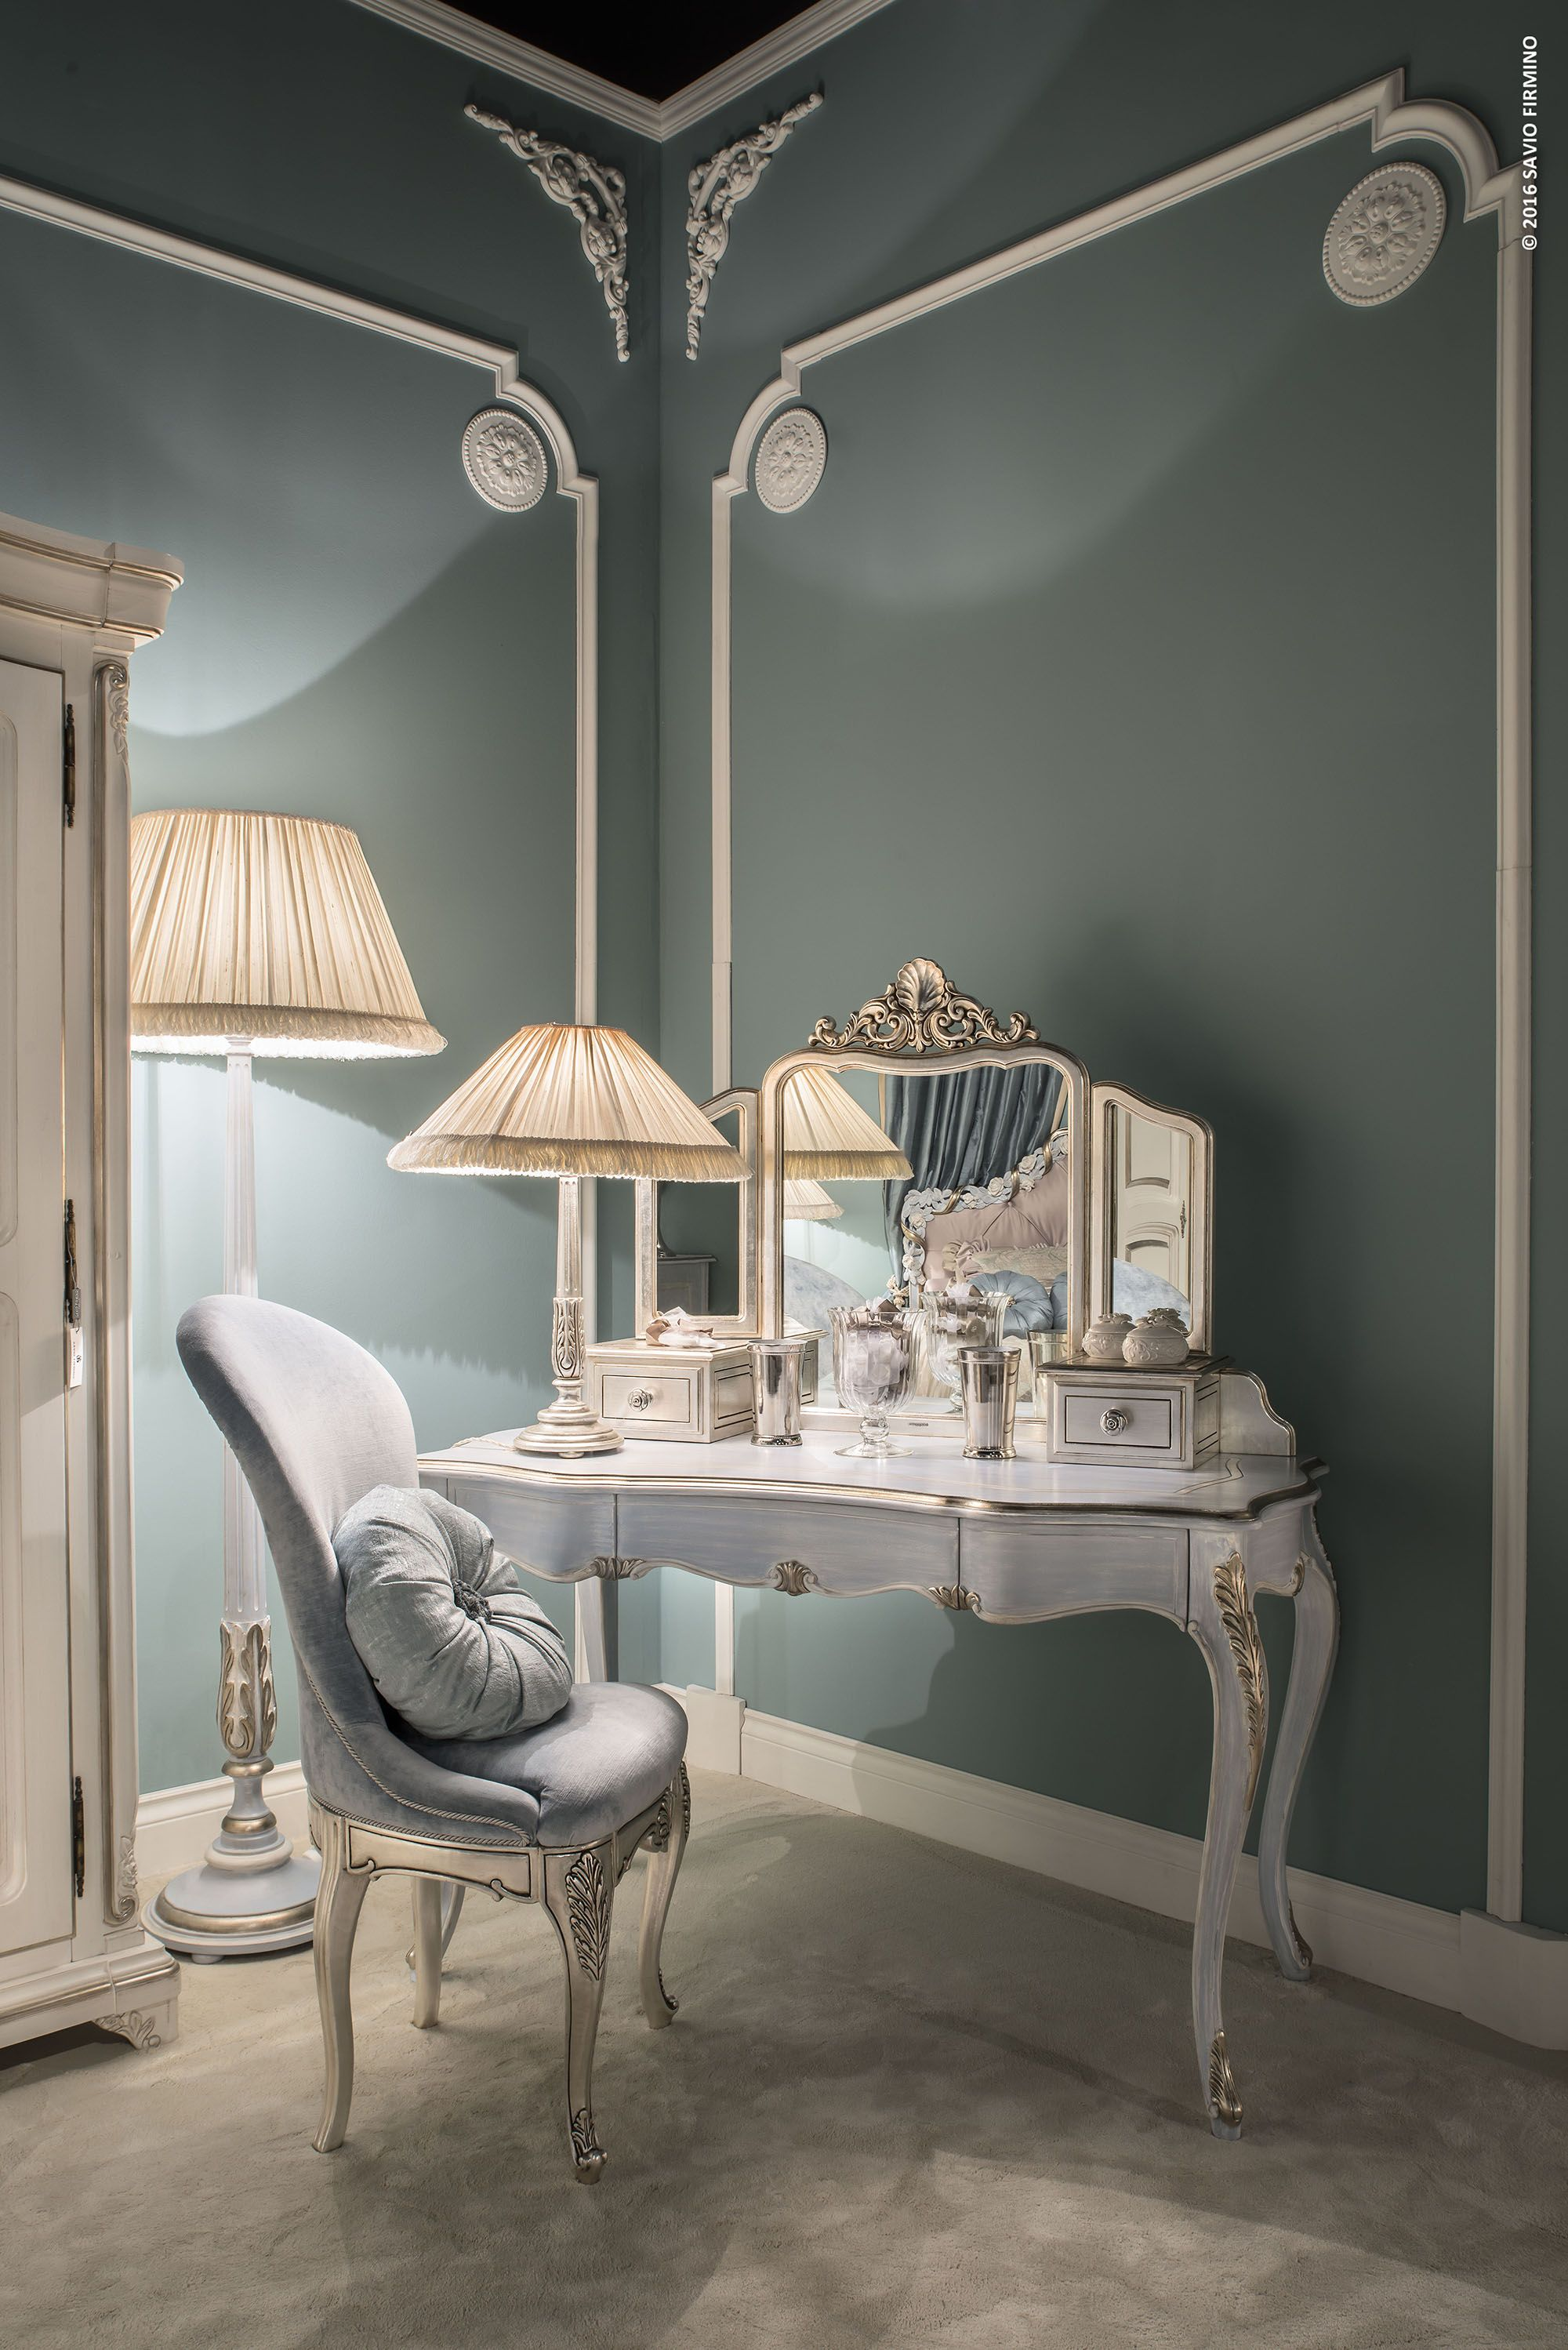 Check our selection of dressing table designs to inspire you for your next interior bathroom design project at http://www.maisonvalentina.net/